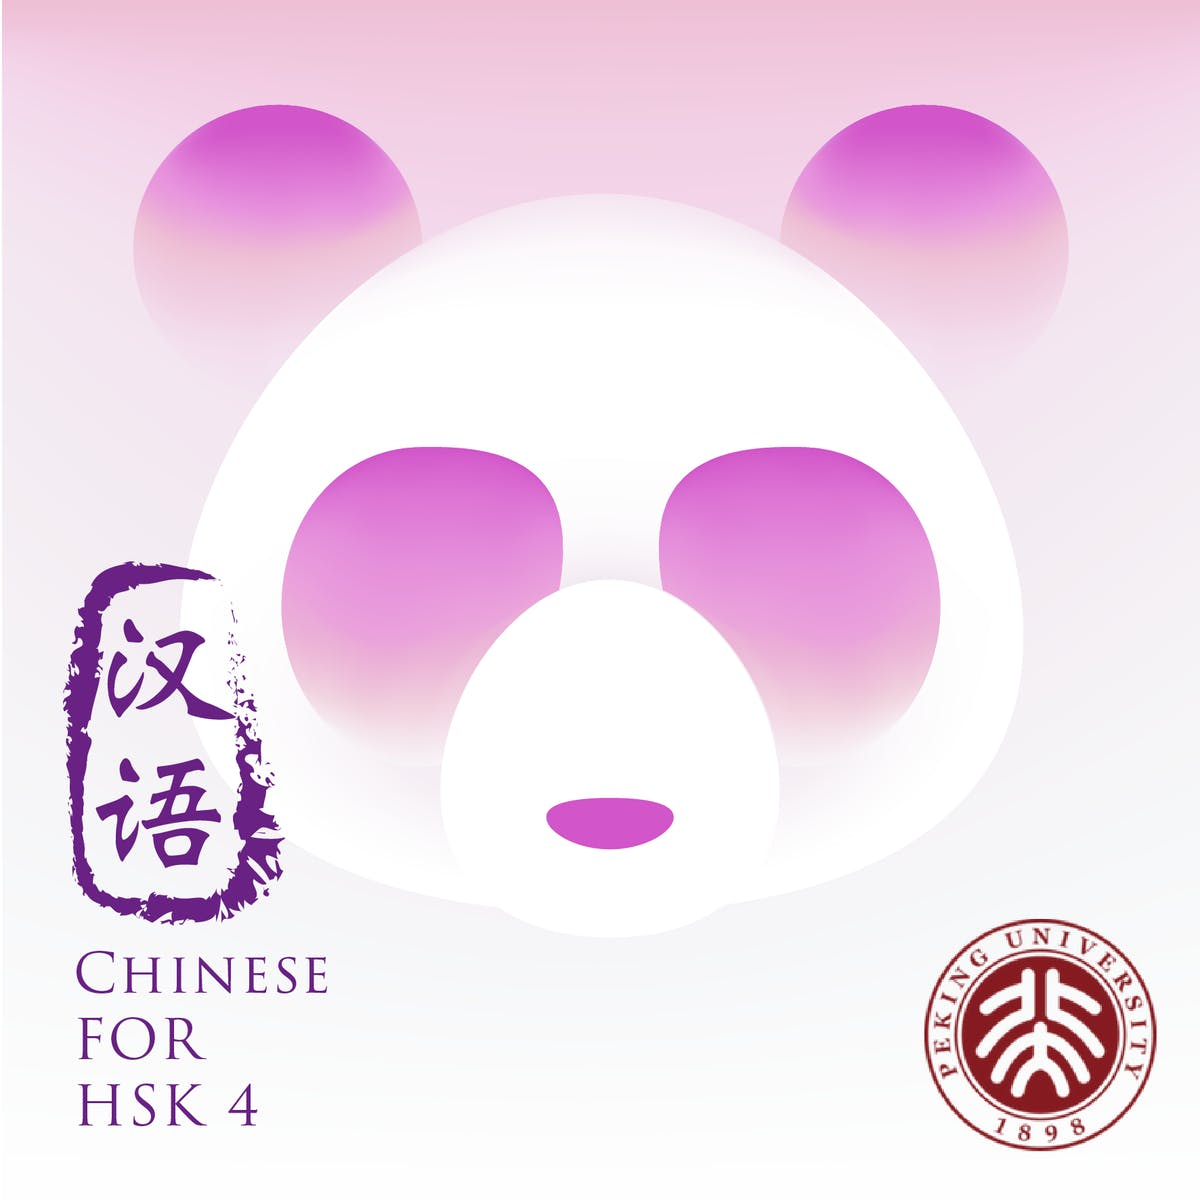 Chinese for HSK 4